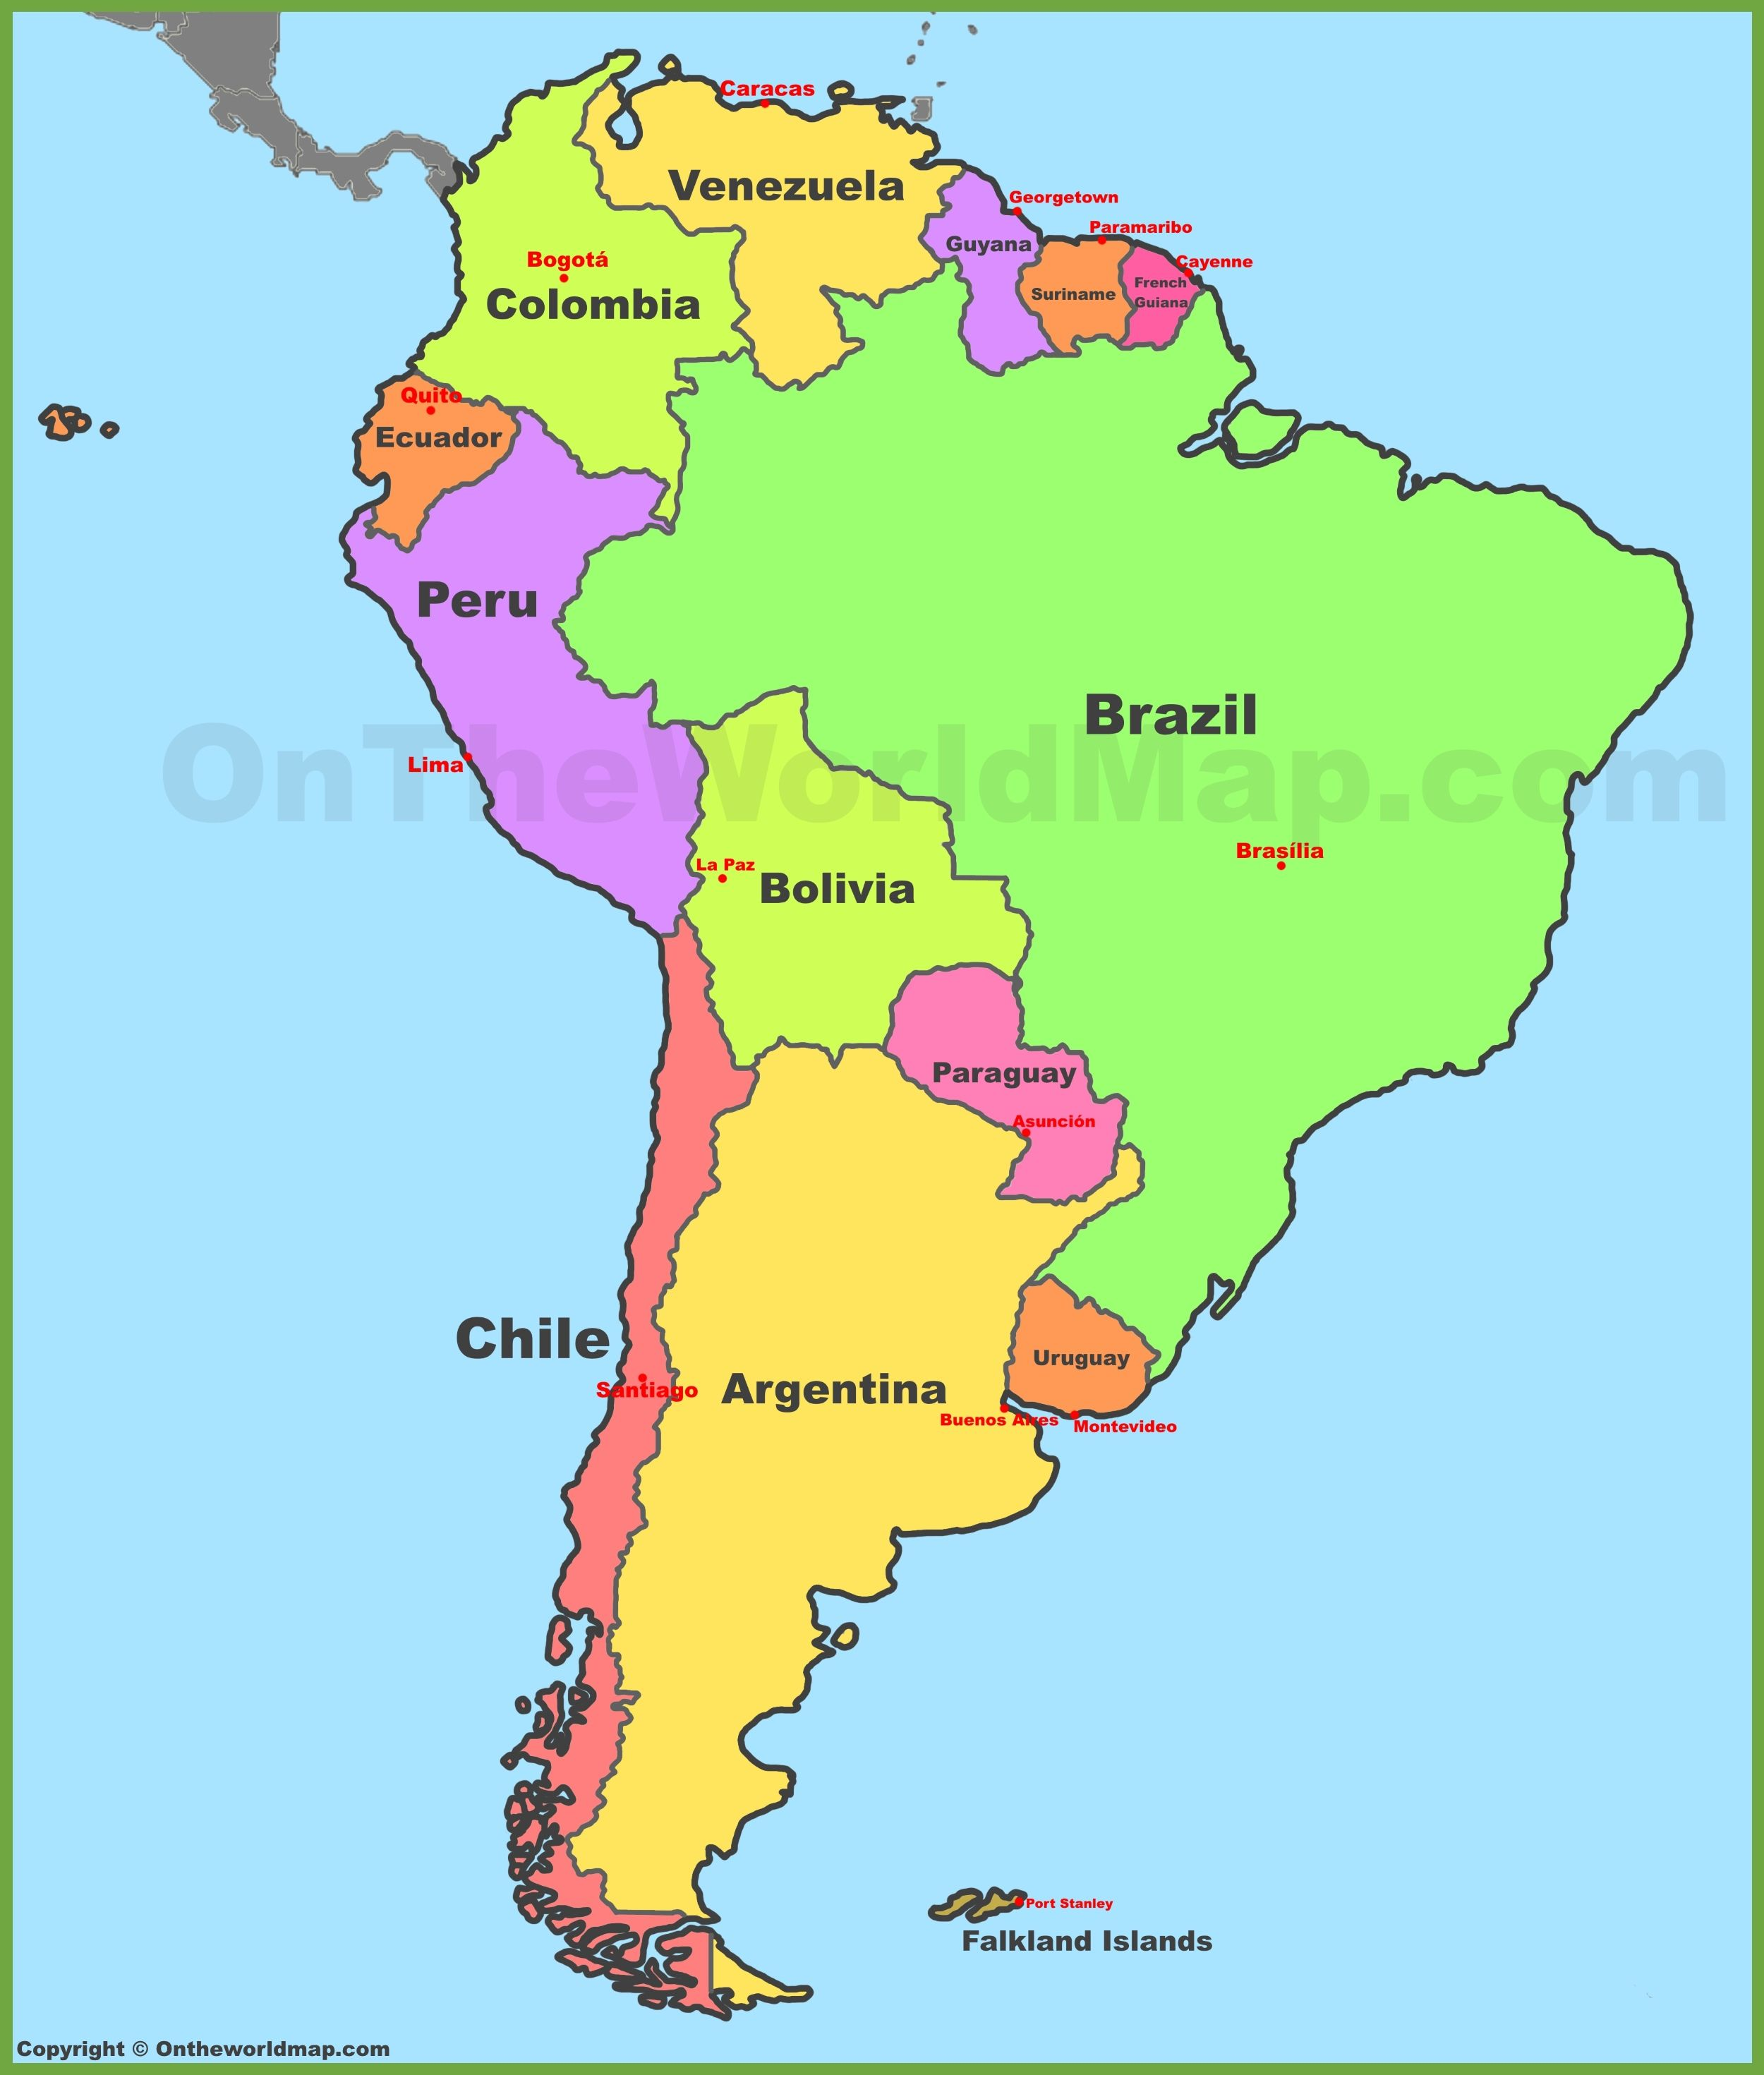 South America Maps Map of South America with countries and capitals | color